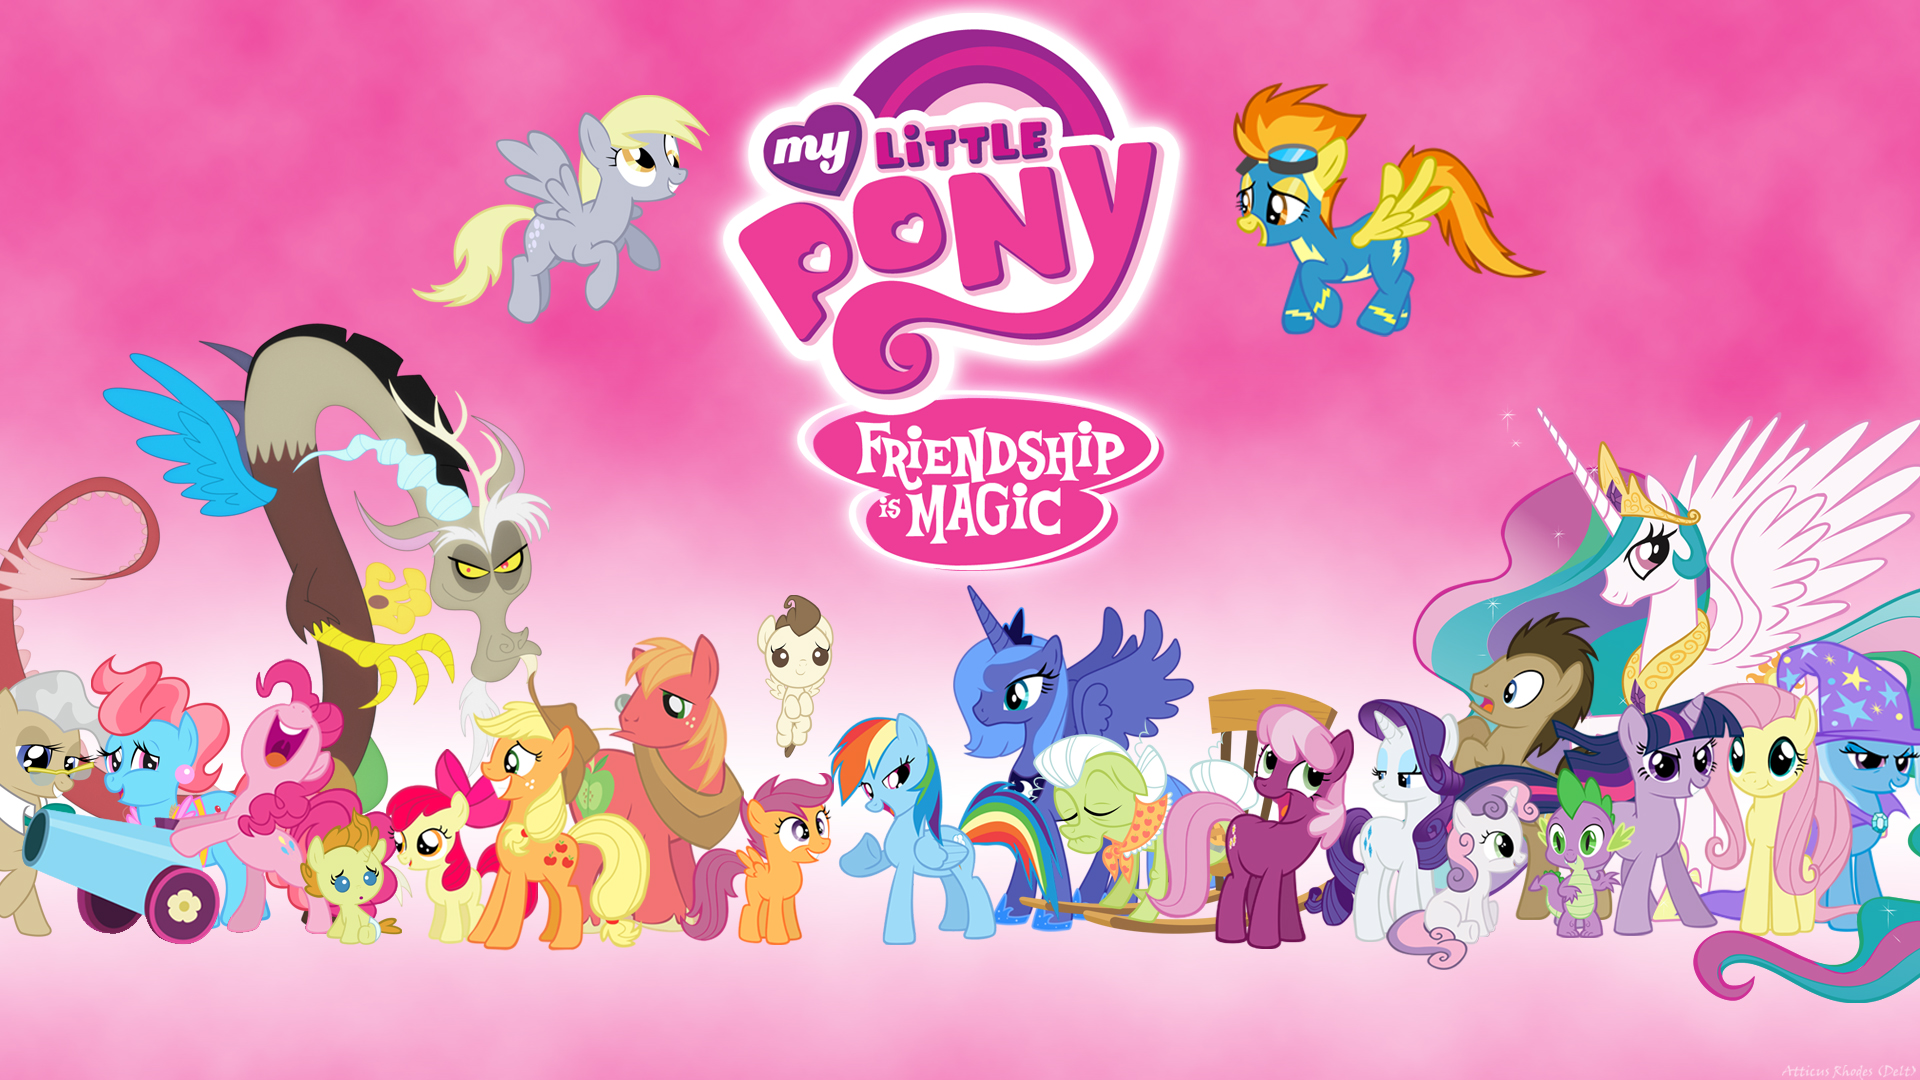 My-little-pony-friendship-is-magic-mlpfim-wallpaper